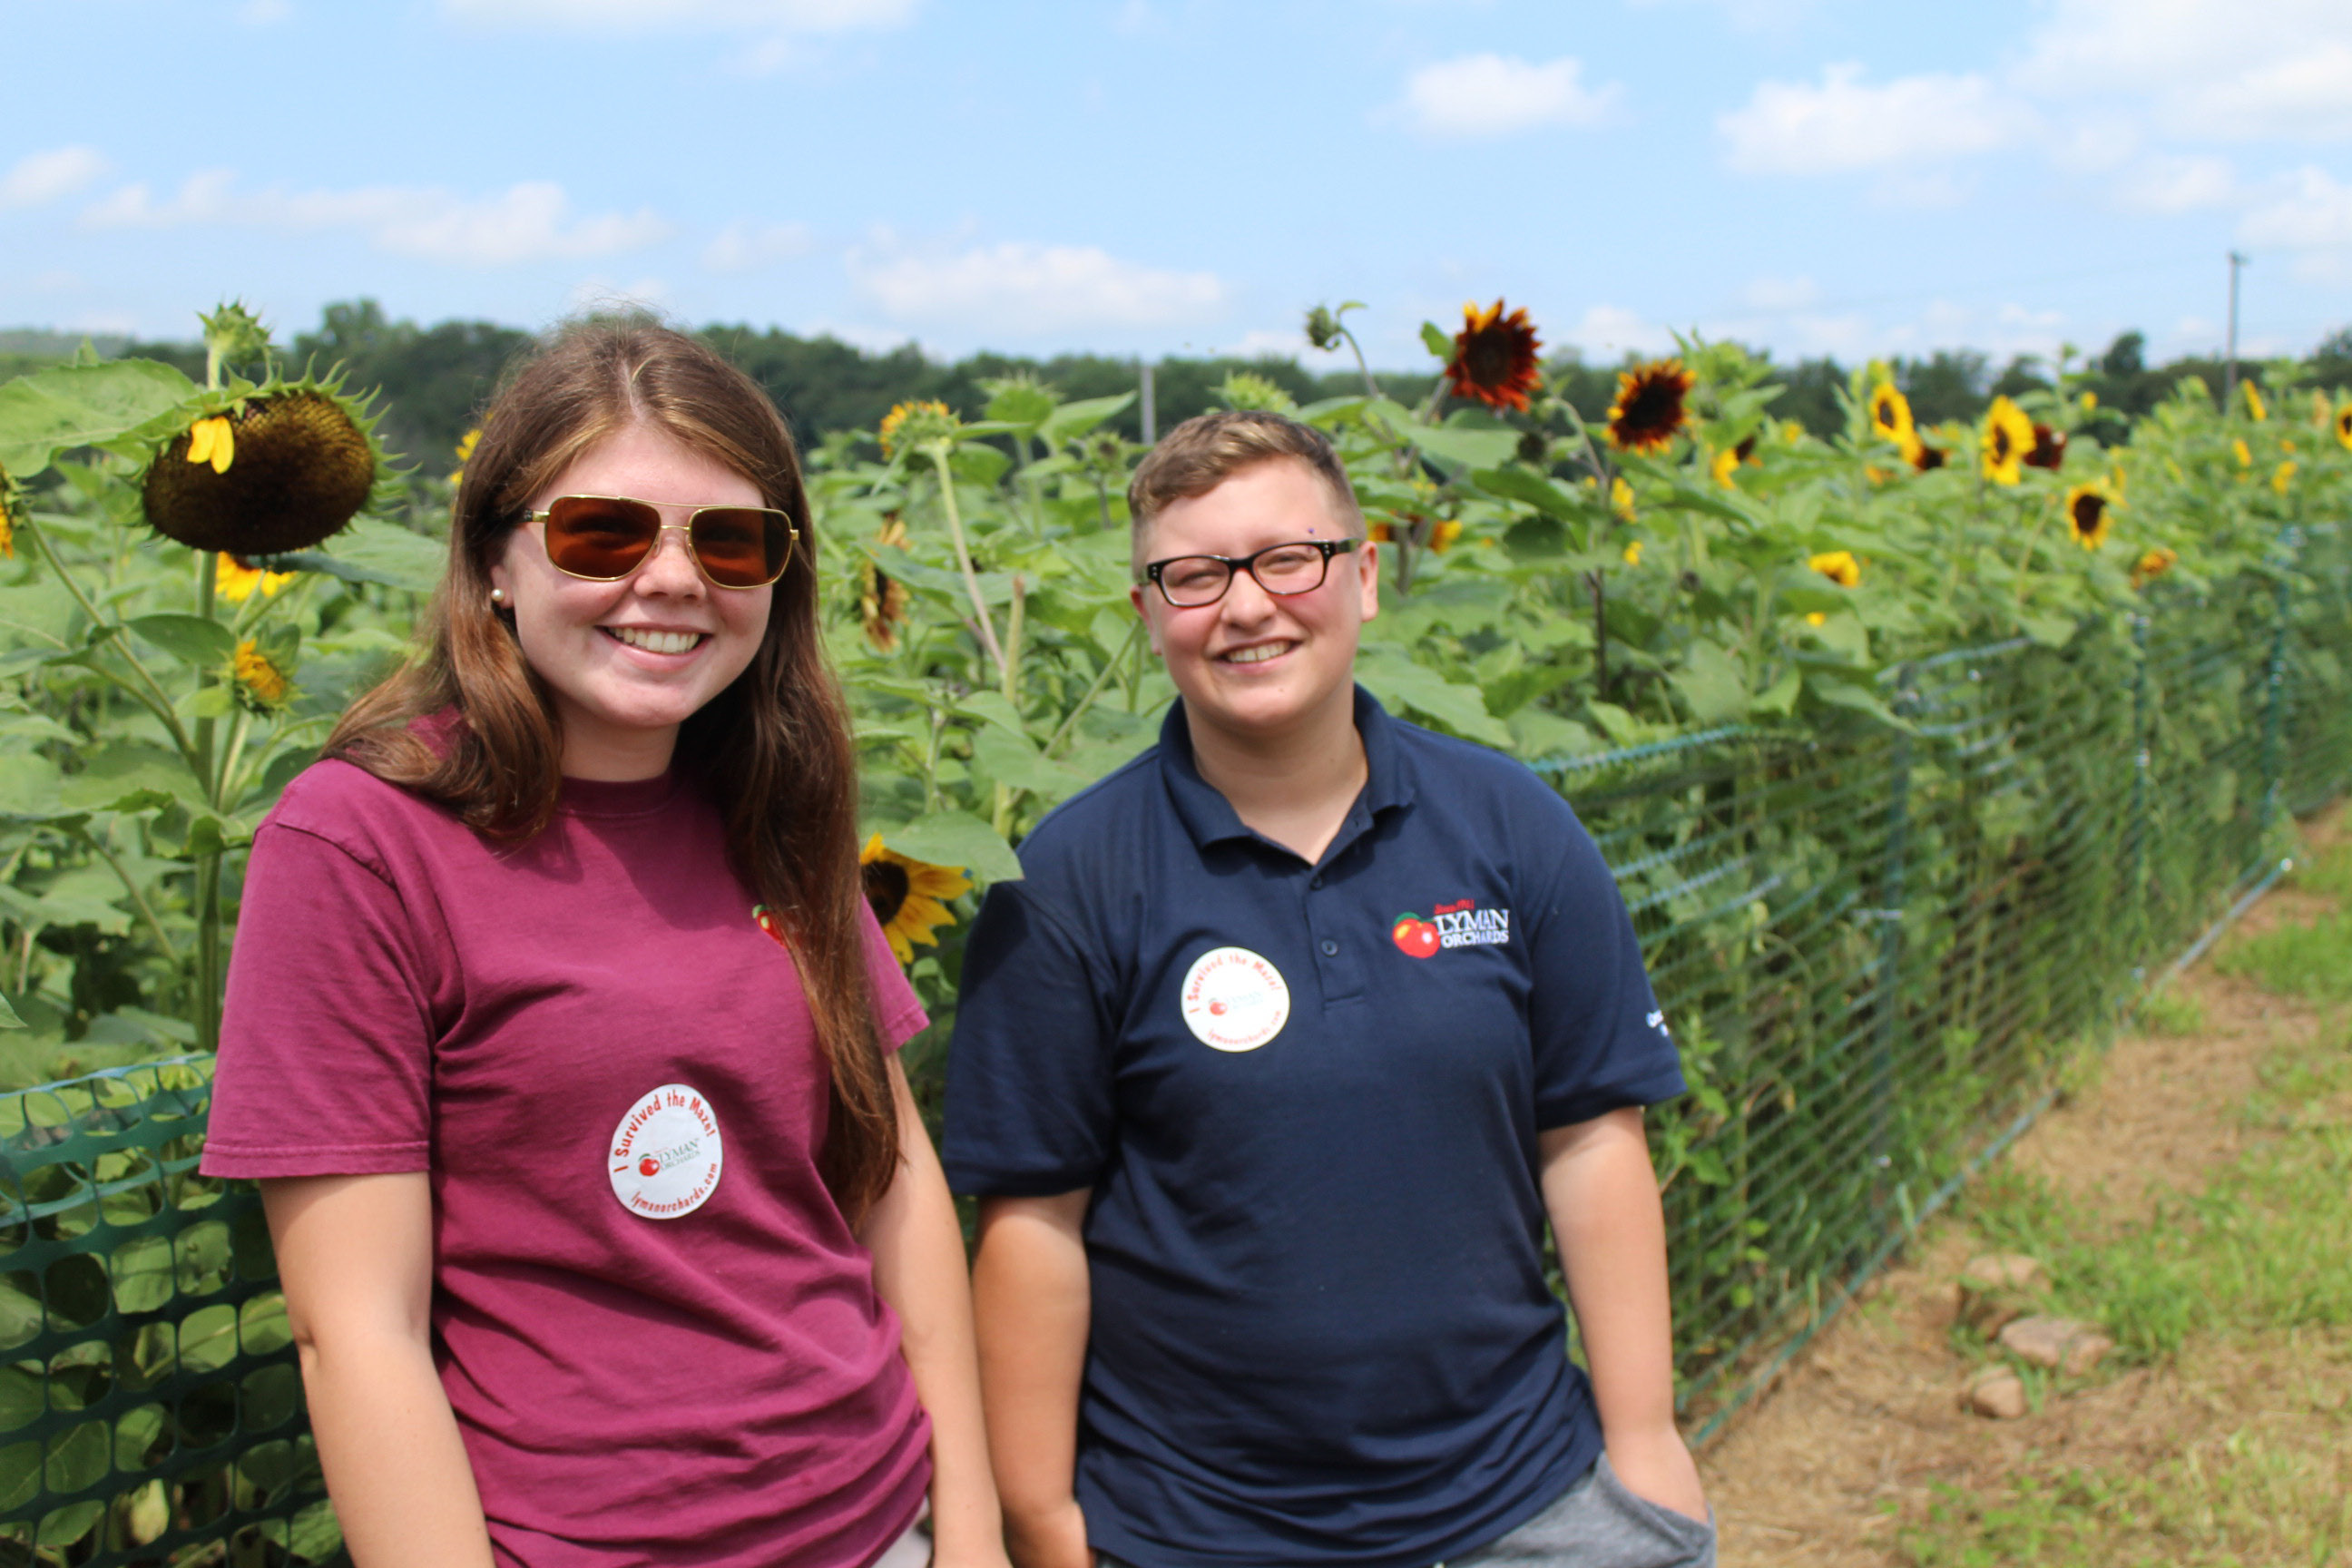 Employees at Lyman Orchard welcome guests at the sunflower maze.